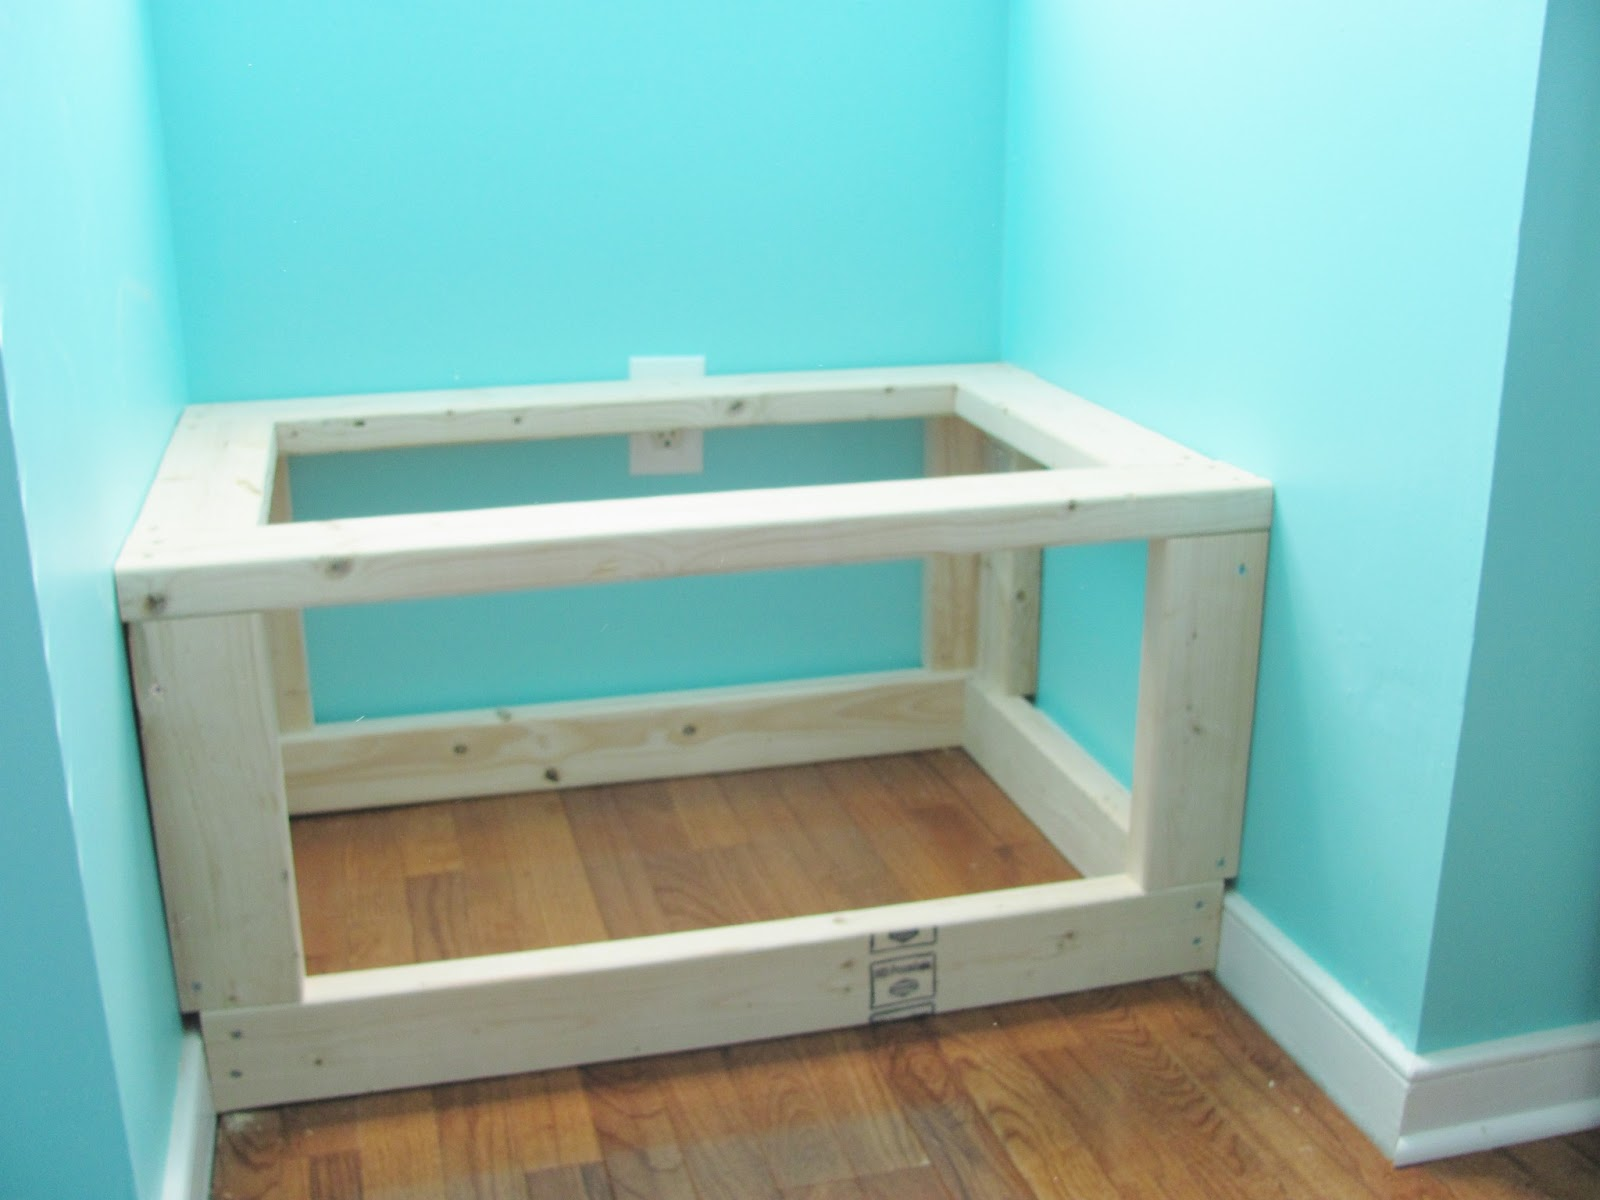 Silver lining decor diy built in window seat and storage - How to build a window bench ...